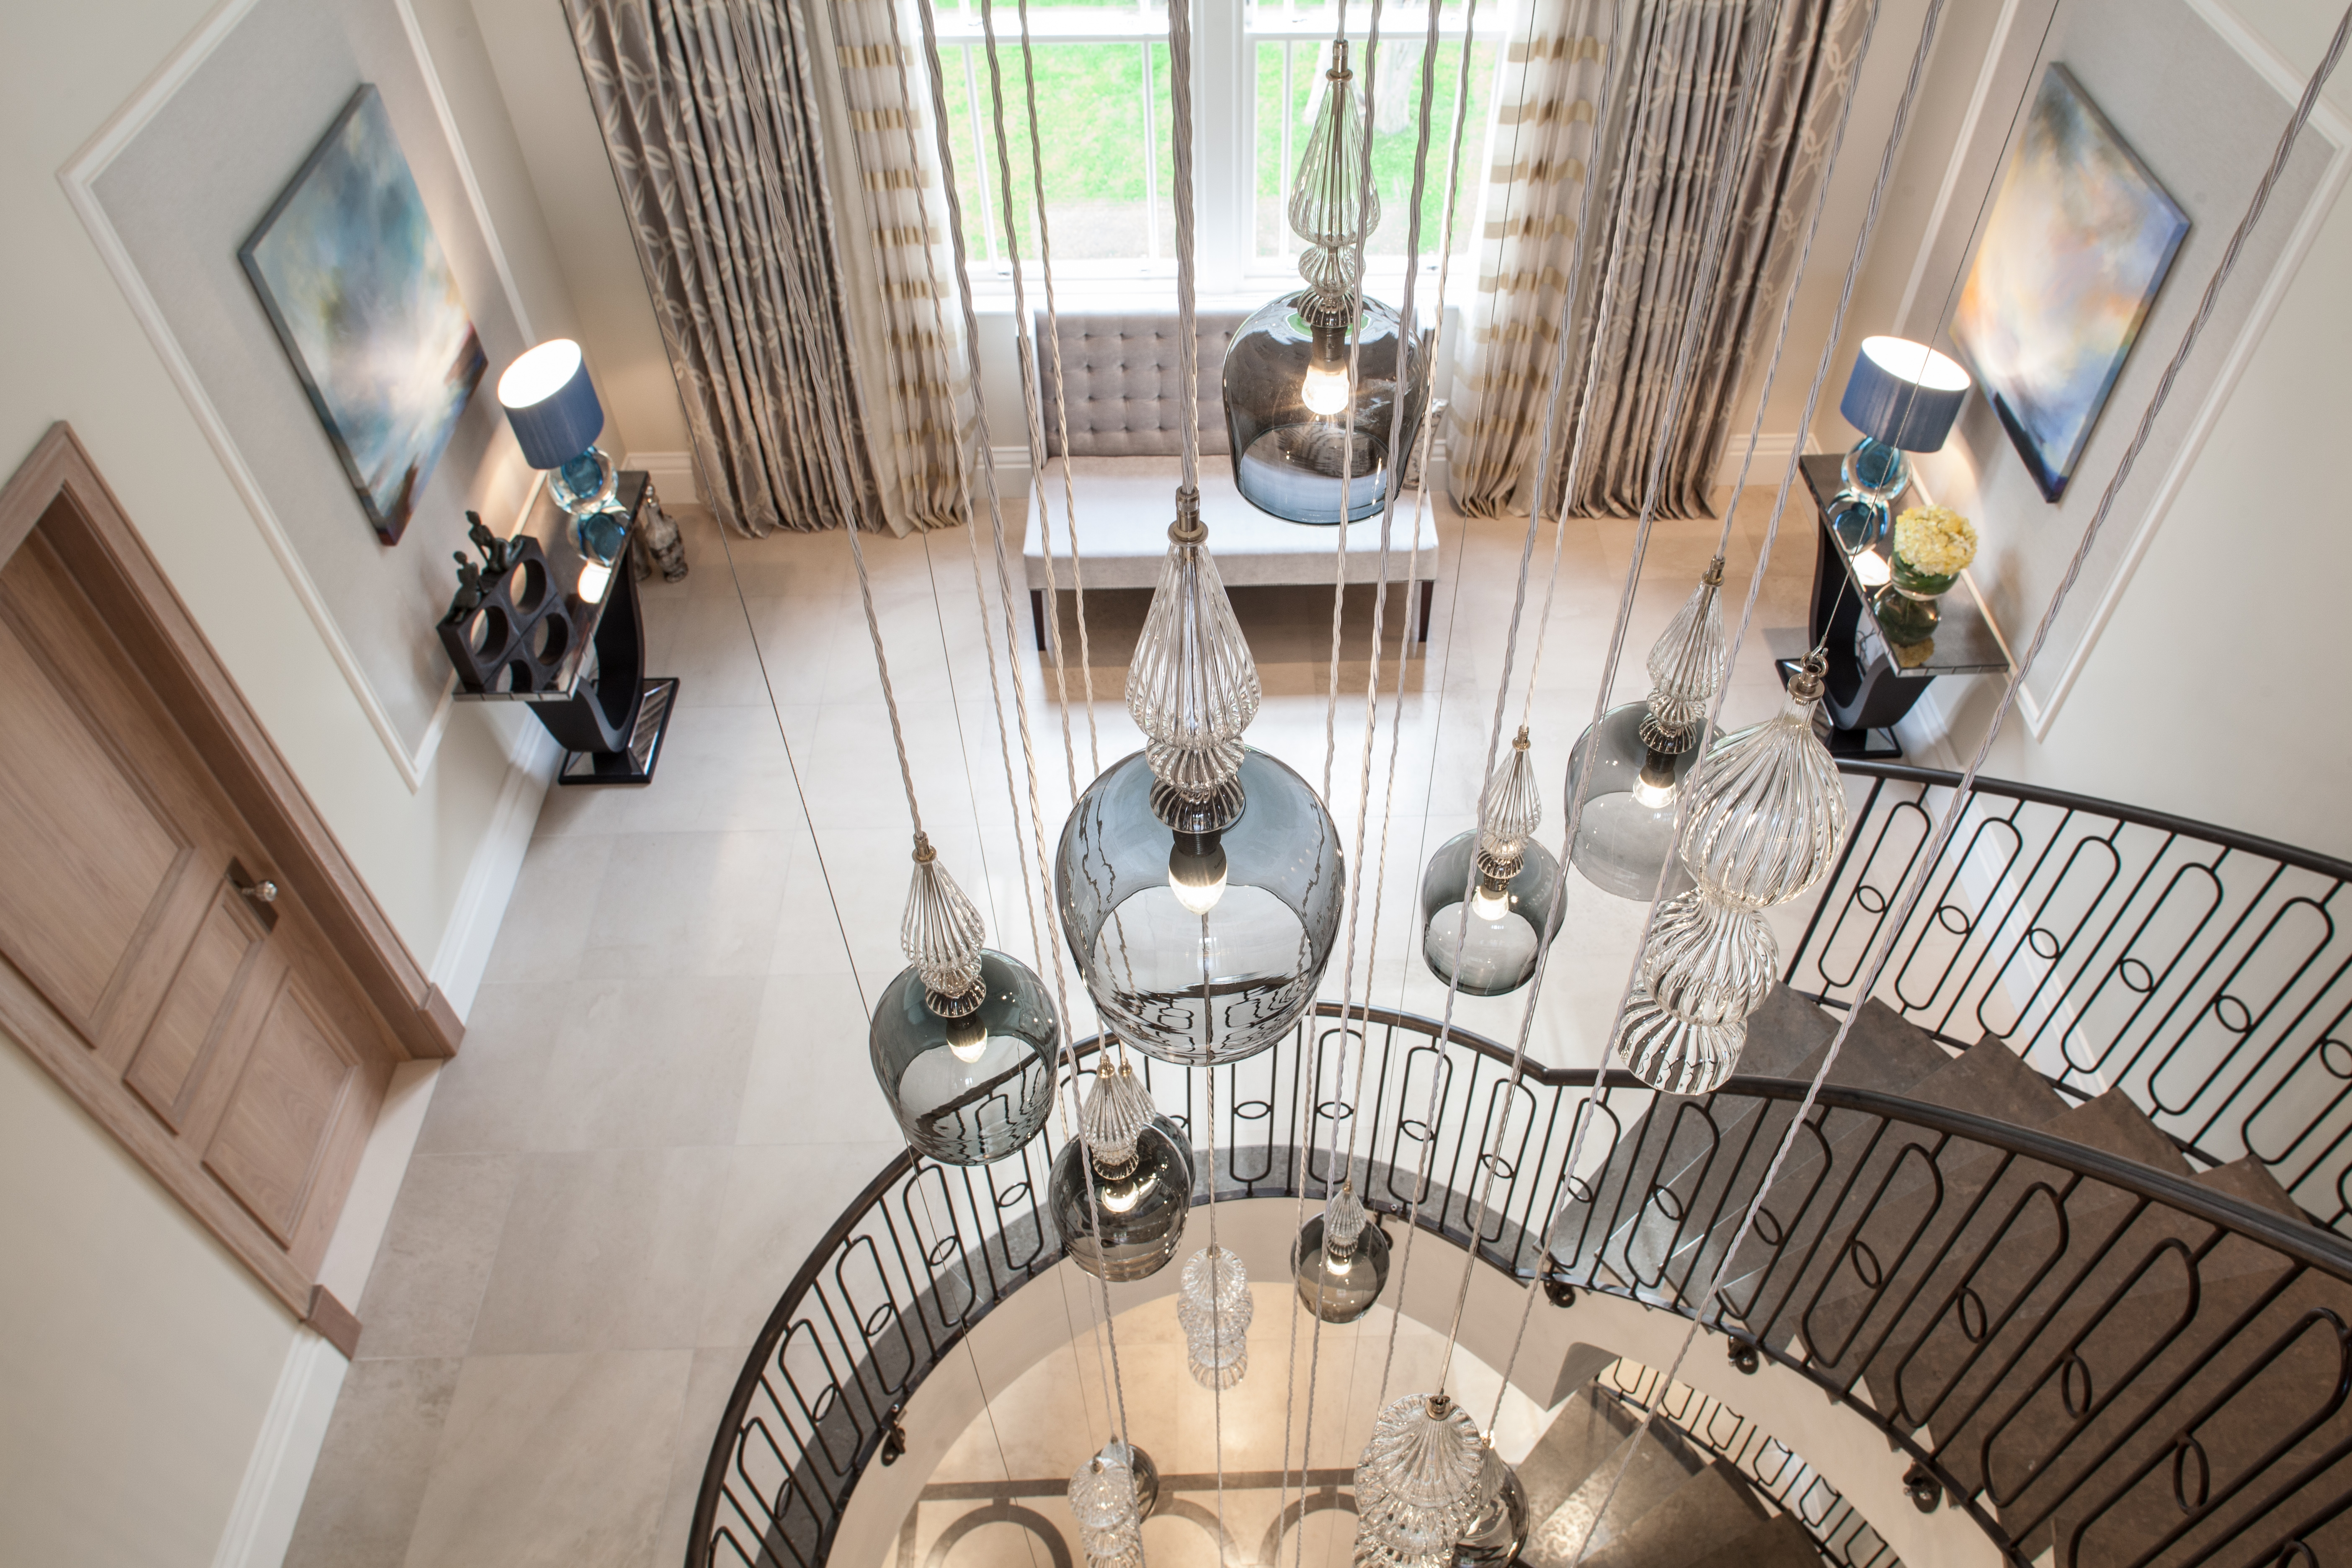 Download Images In Situ Rothschild Bickers For Stairwell Chandeliers (#6 of 12)